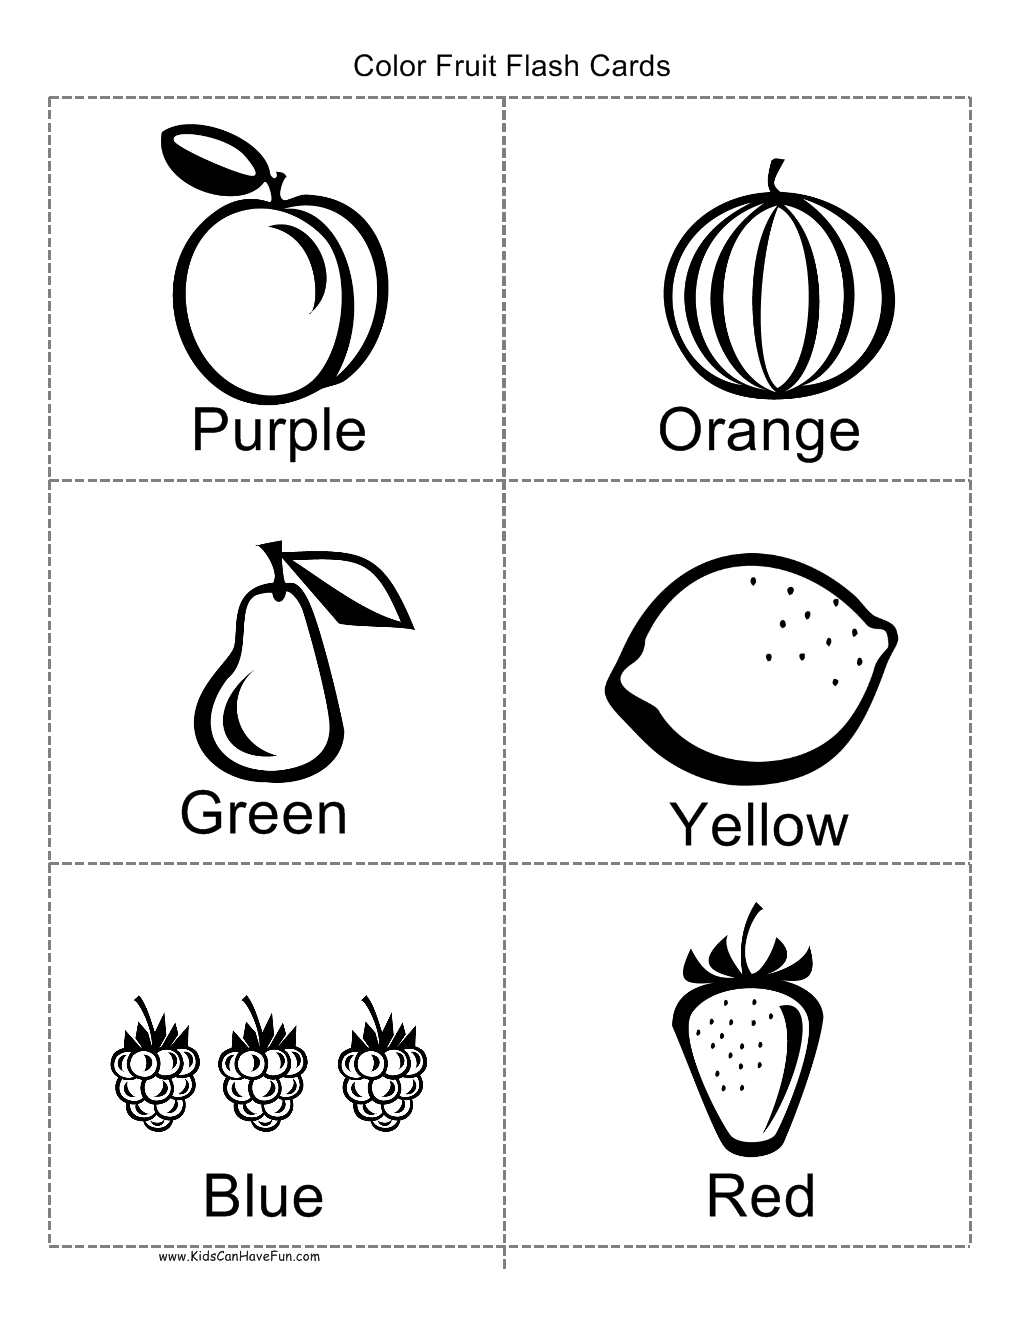 Color Fruit Flashcards Coloring Worksheets For Kindergarten Fruit Coloring Pages Kindergarten Coloring Pages